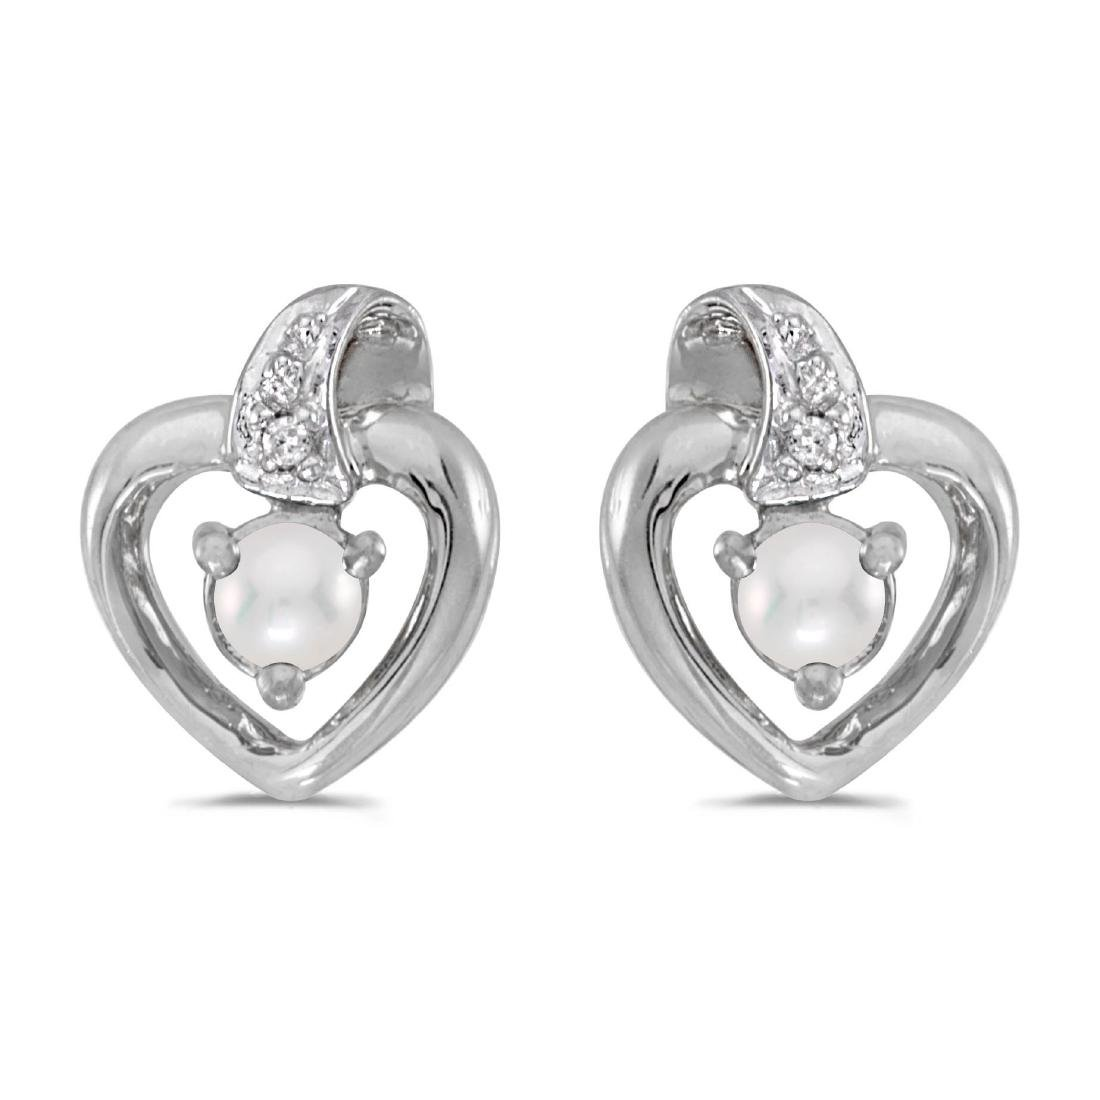 Certified 10k White Gold Pearl And Diamond Heart Earrin